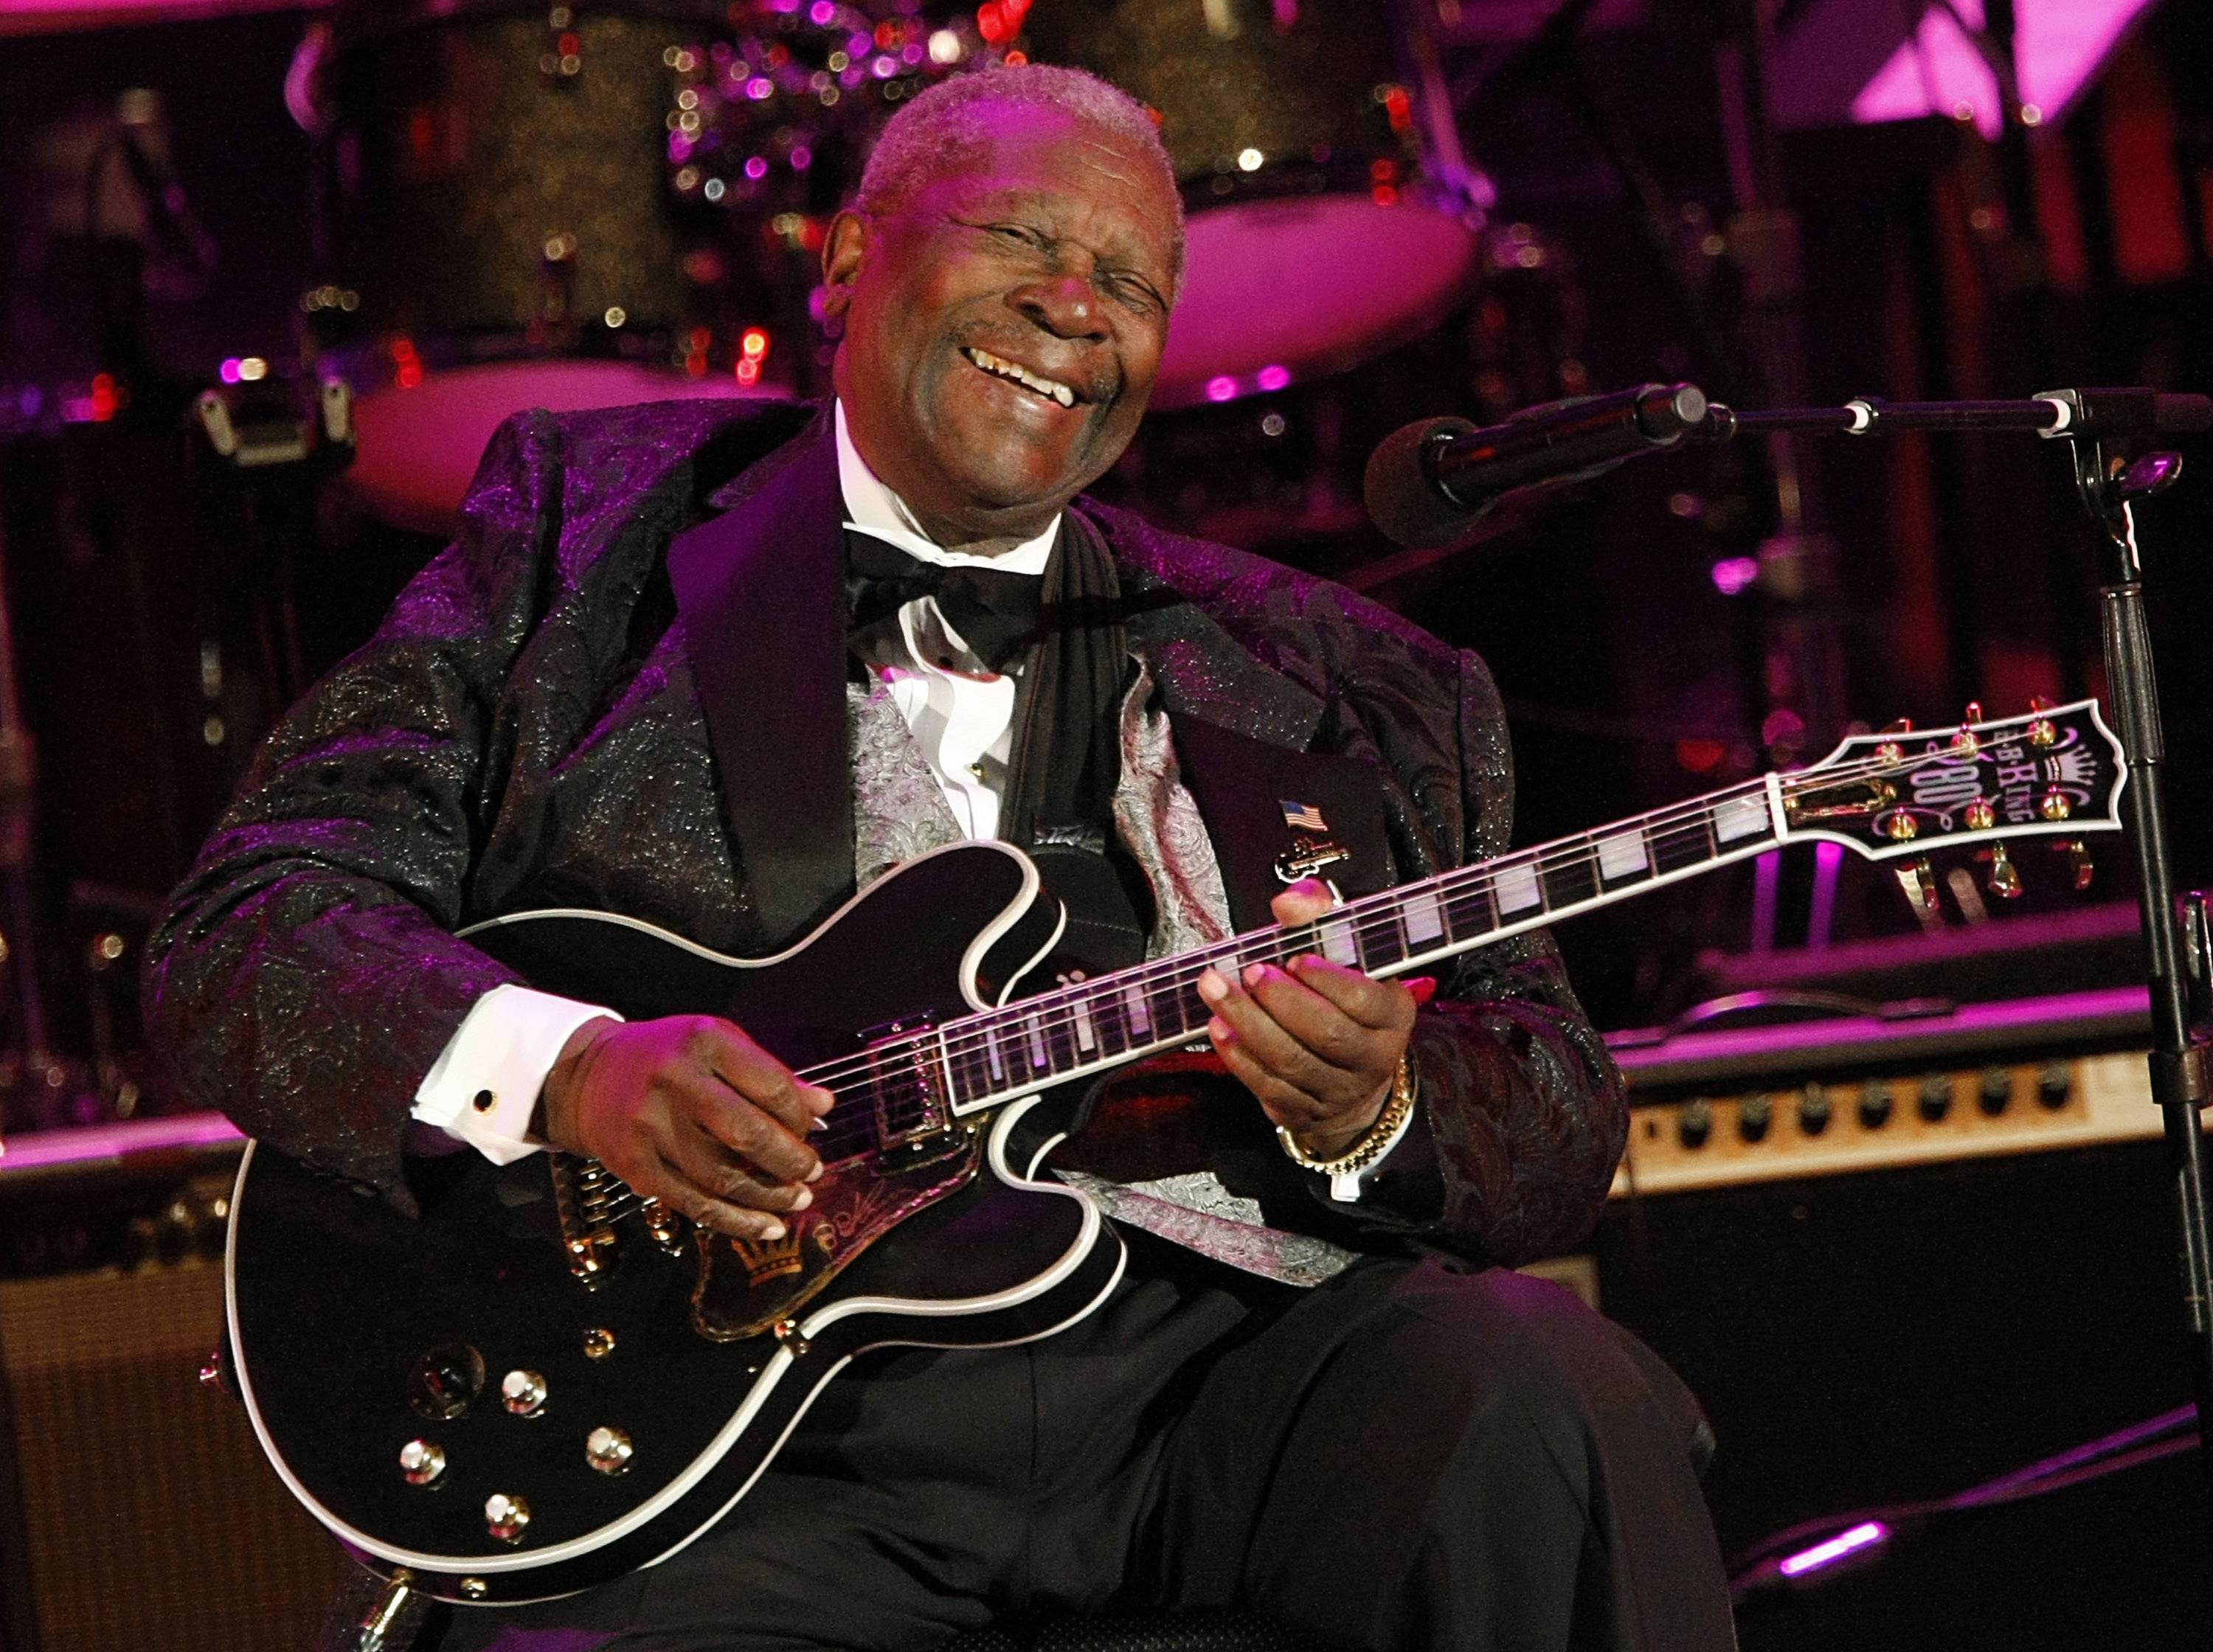 In this June 20, 2008, file photo, musician B.B. King performs at the opening night of the 87th season of the Hollywood Bowl in Los Angeles.